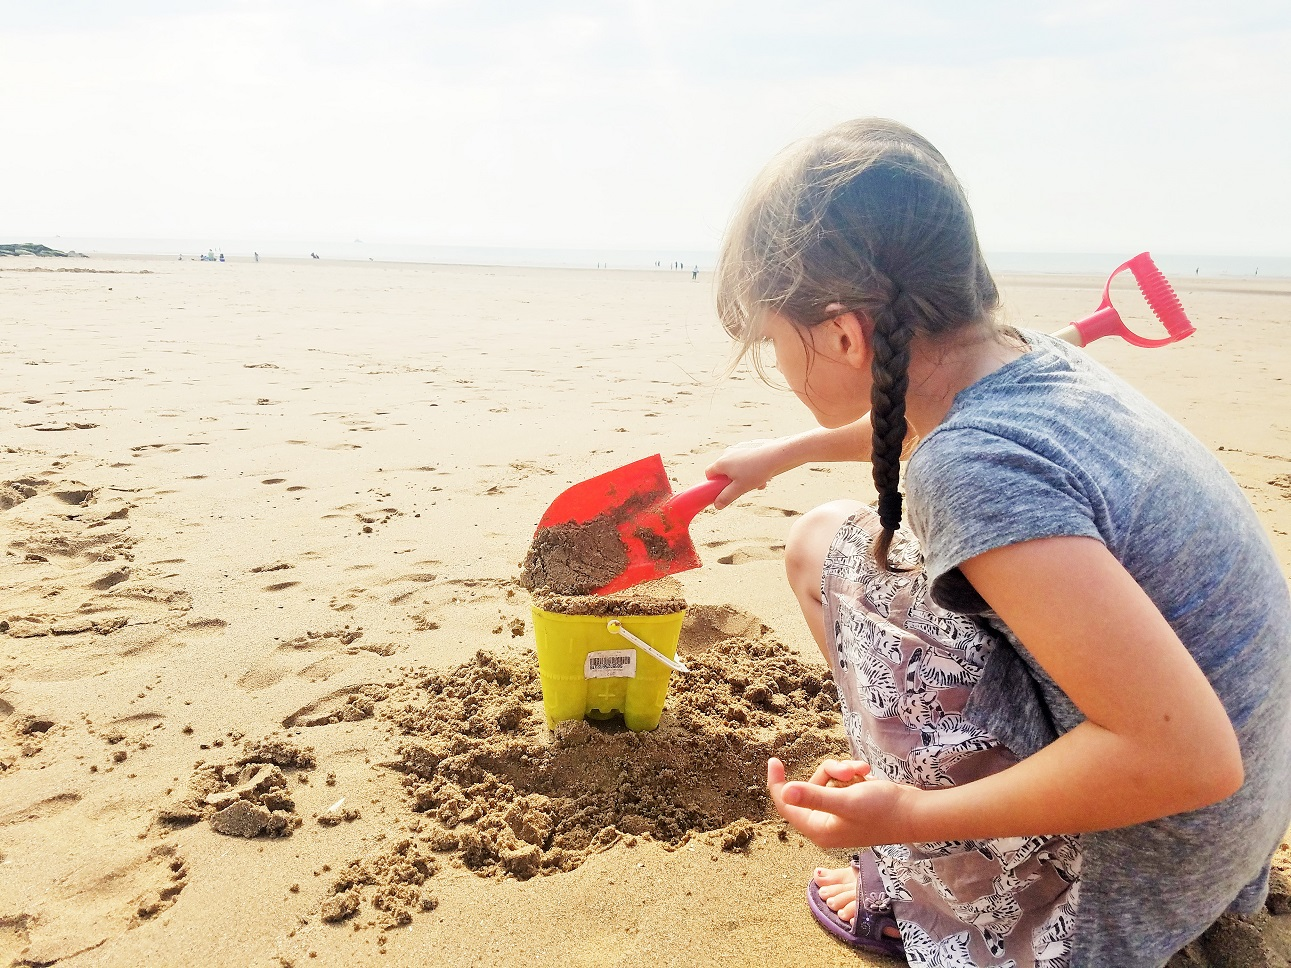 The kids are listening - negative labelling can be harmful to children - child digging a sandcastle